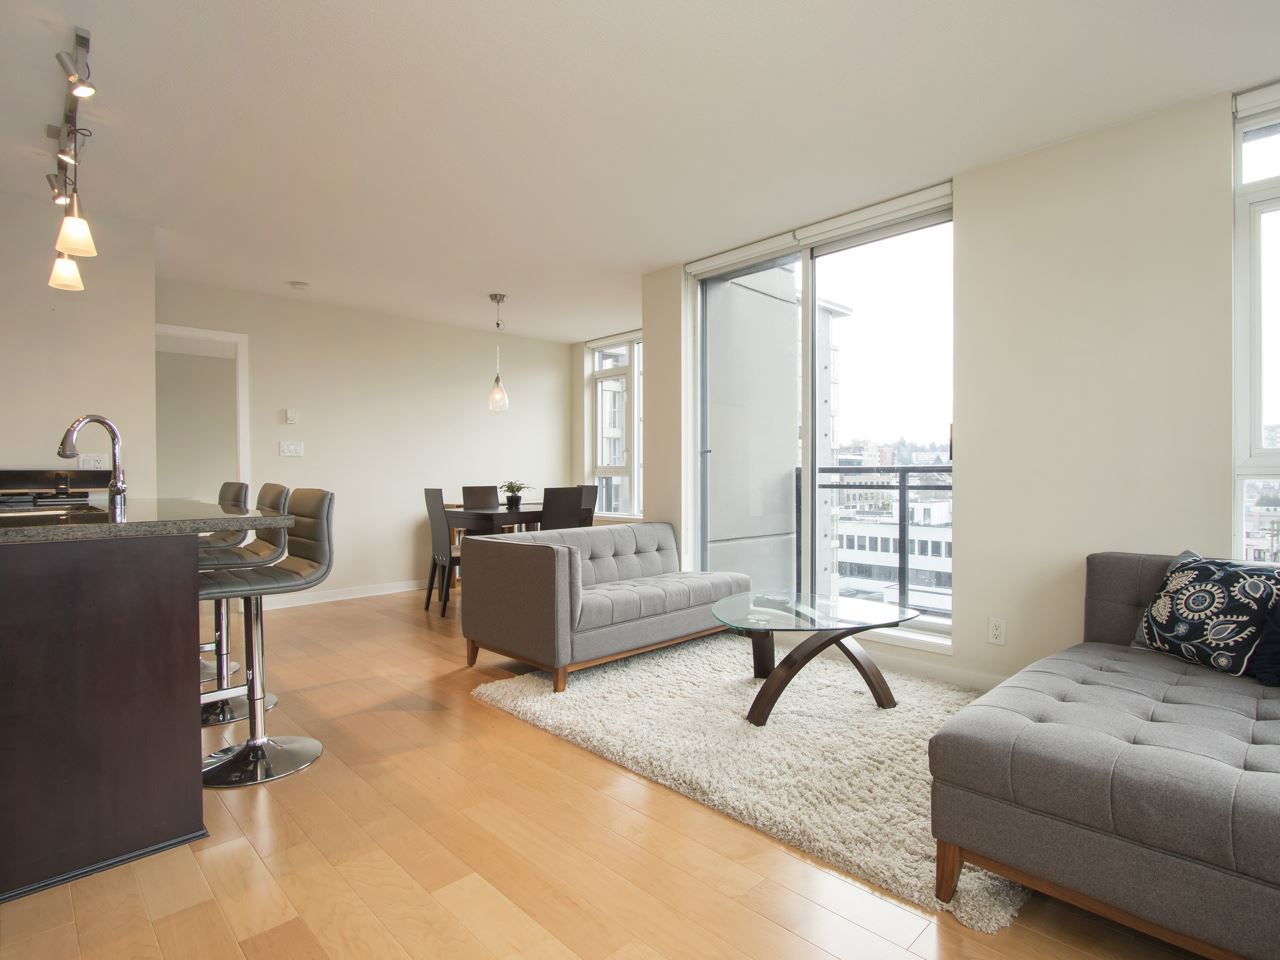 Photo 3: 1002 1650 W 7TH AVENUE in Vancouver: Fairview VW Condo for sale (Vancouver West)  : MLS® # R2022214